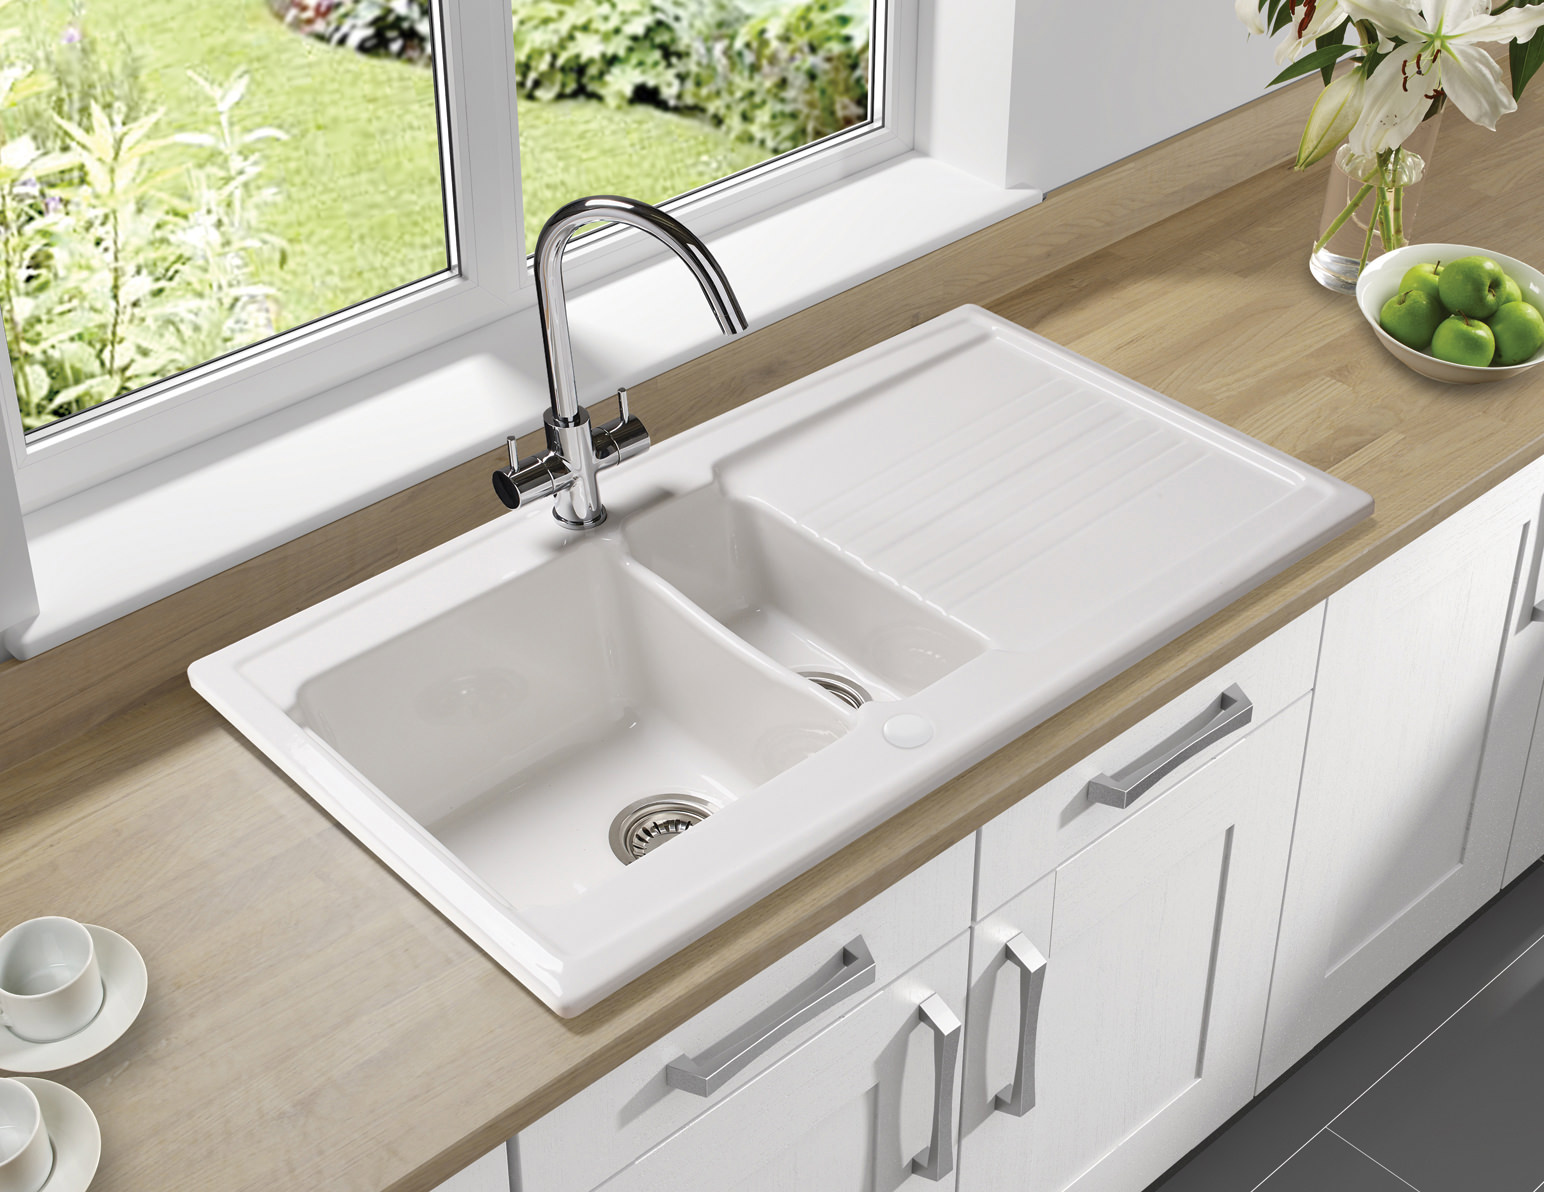 Additional Image Of Astracast Equinox 1 5 Bowl White Ceramic Inset Kitchen Sink